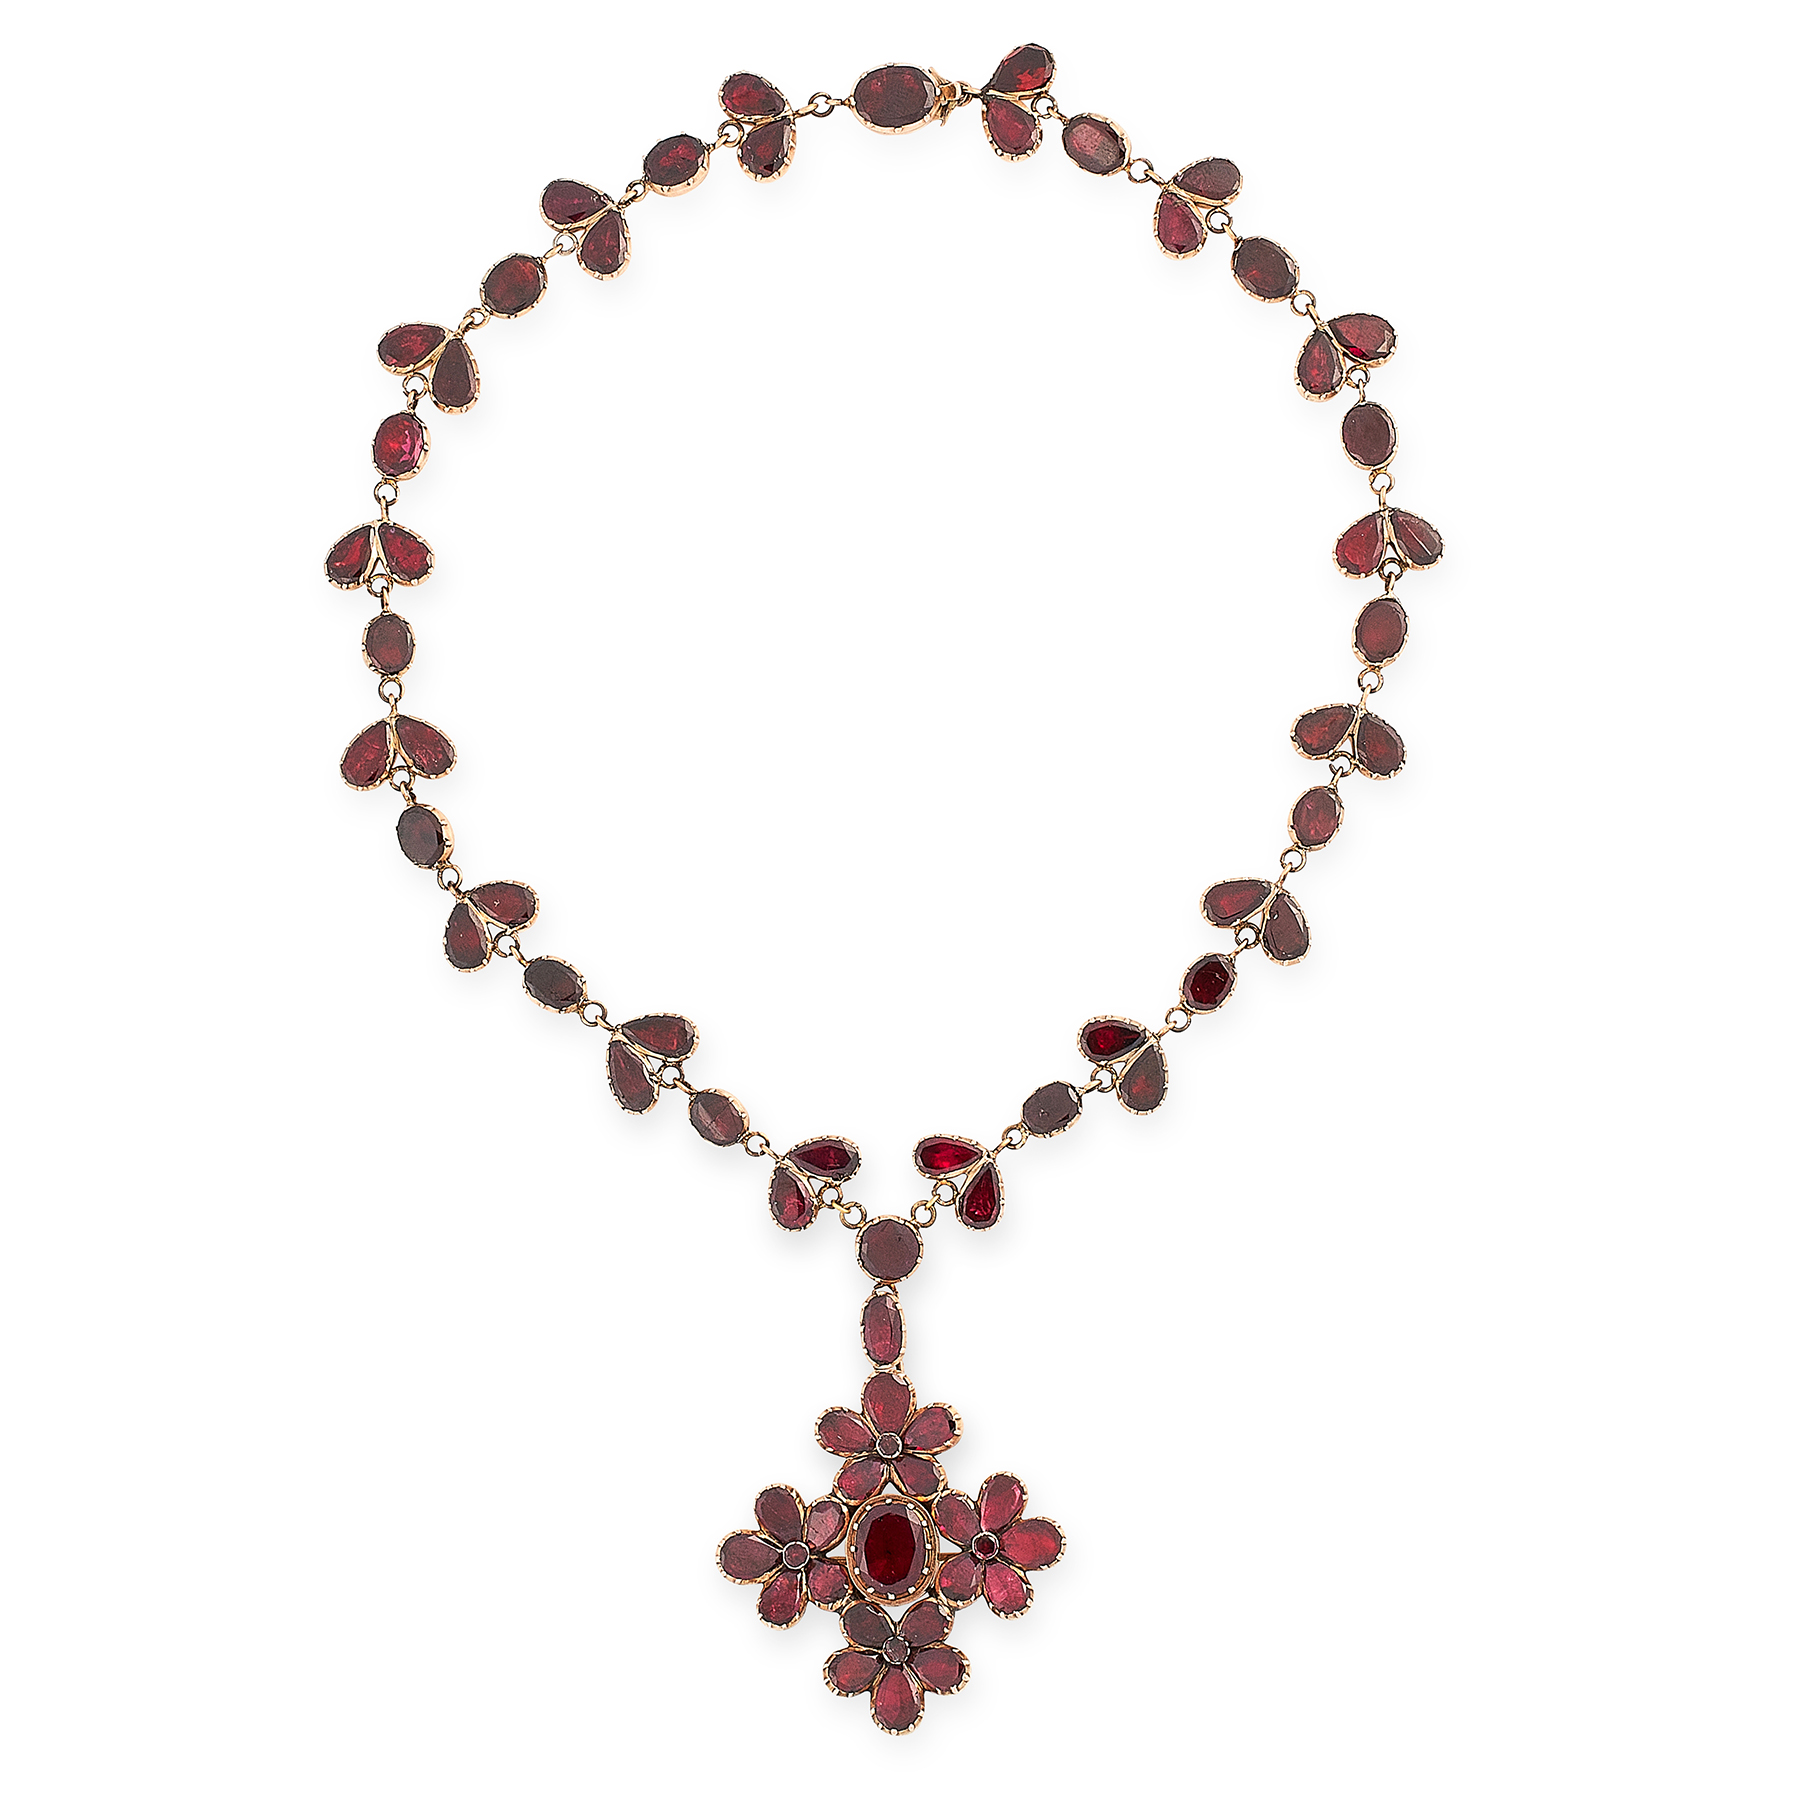 AN ANTIQUE GARNET NECKLACE, 19TH CENTURY in yellow gold, the drop formed of four flower motifs set